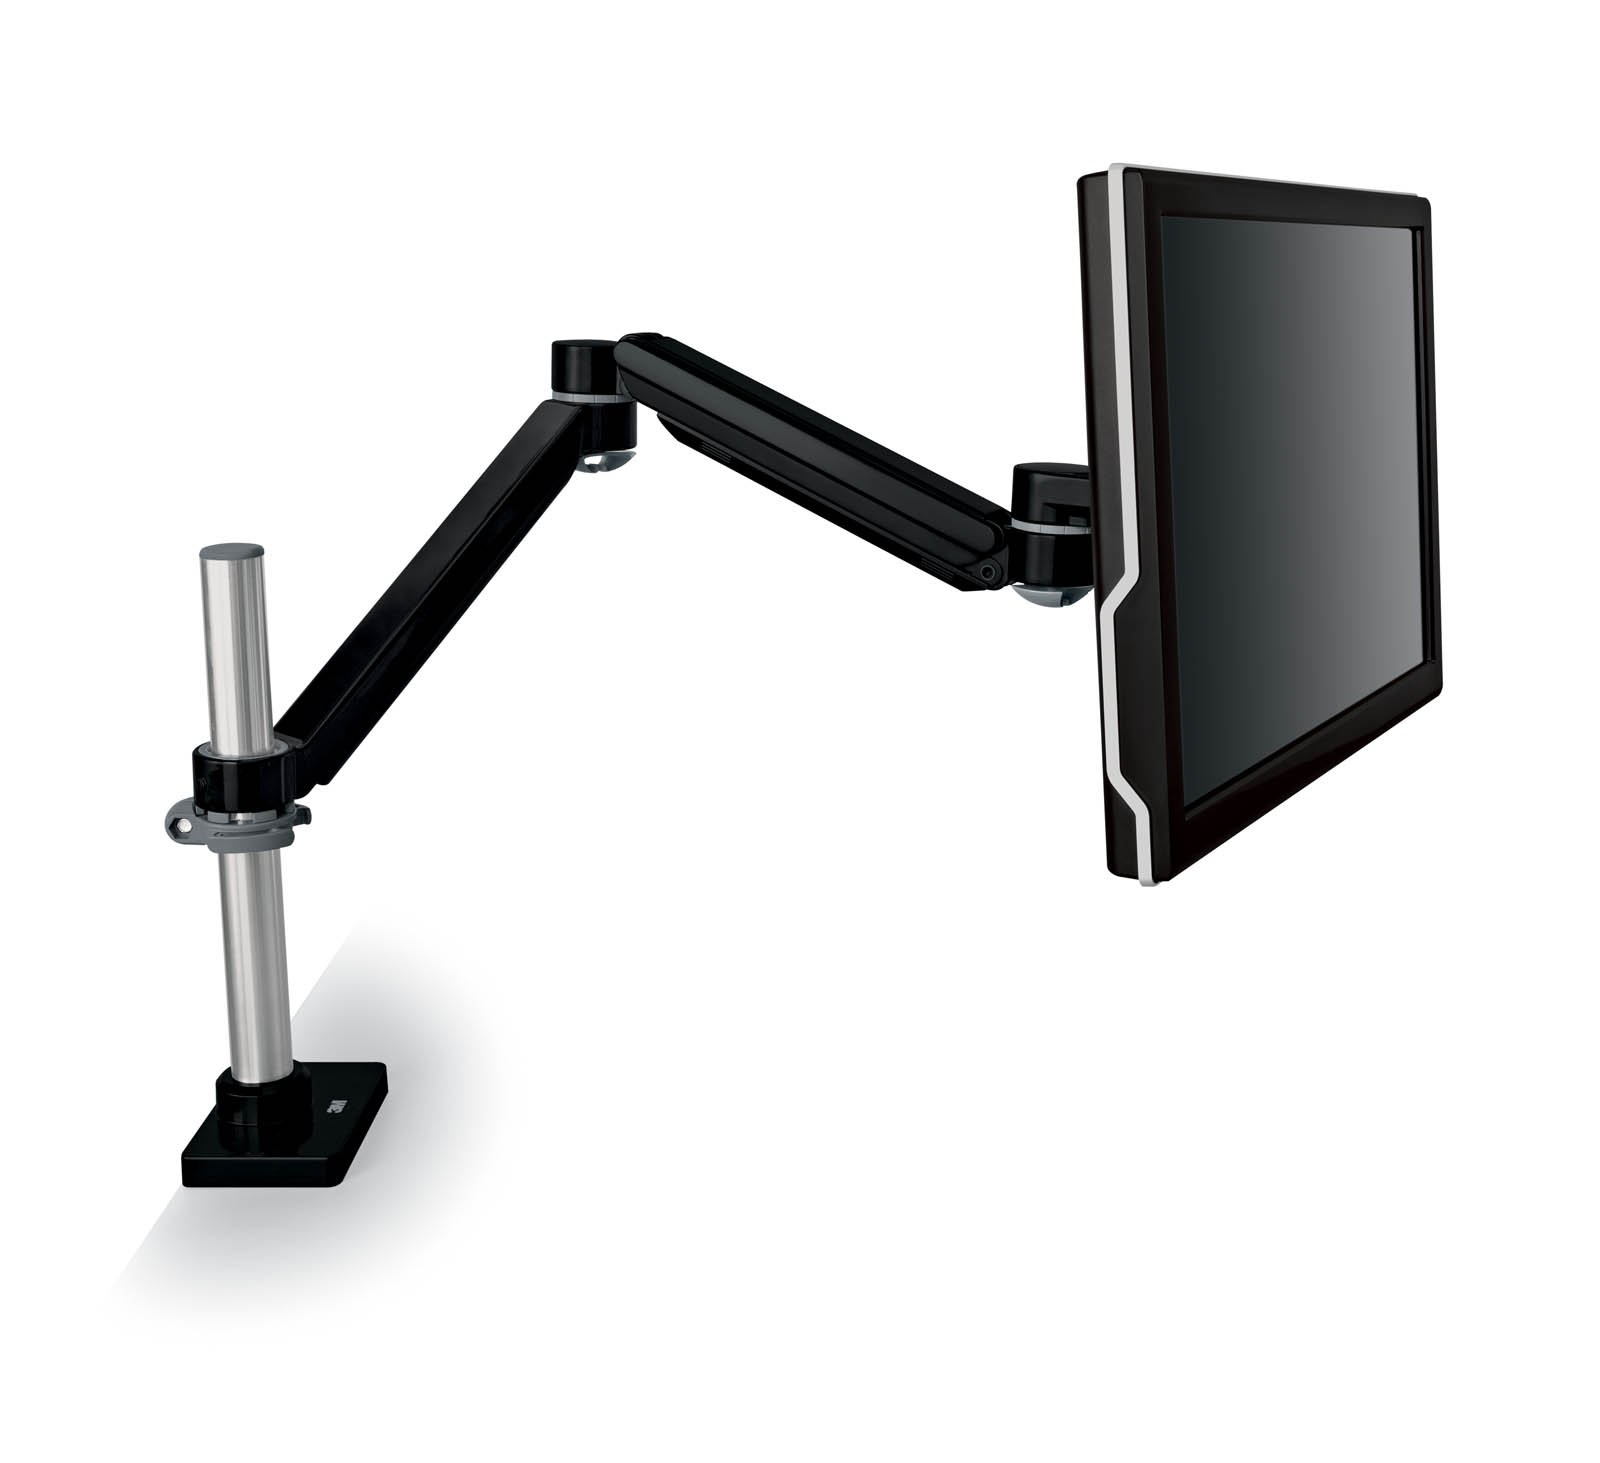 """3M Easy Adjust Desk Mount Monitor Arm, Adjust Height, Tilt, Swivel and Rotate by Holding and Moving Monitor, Free Up Desk Space, Clamp or Grommet, For Monitors Up to 20 lbs <= 27"""", Black (MA240MB)"""